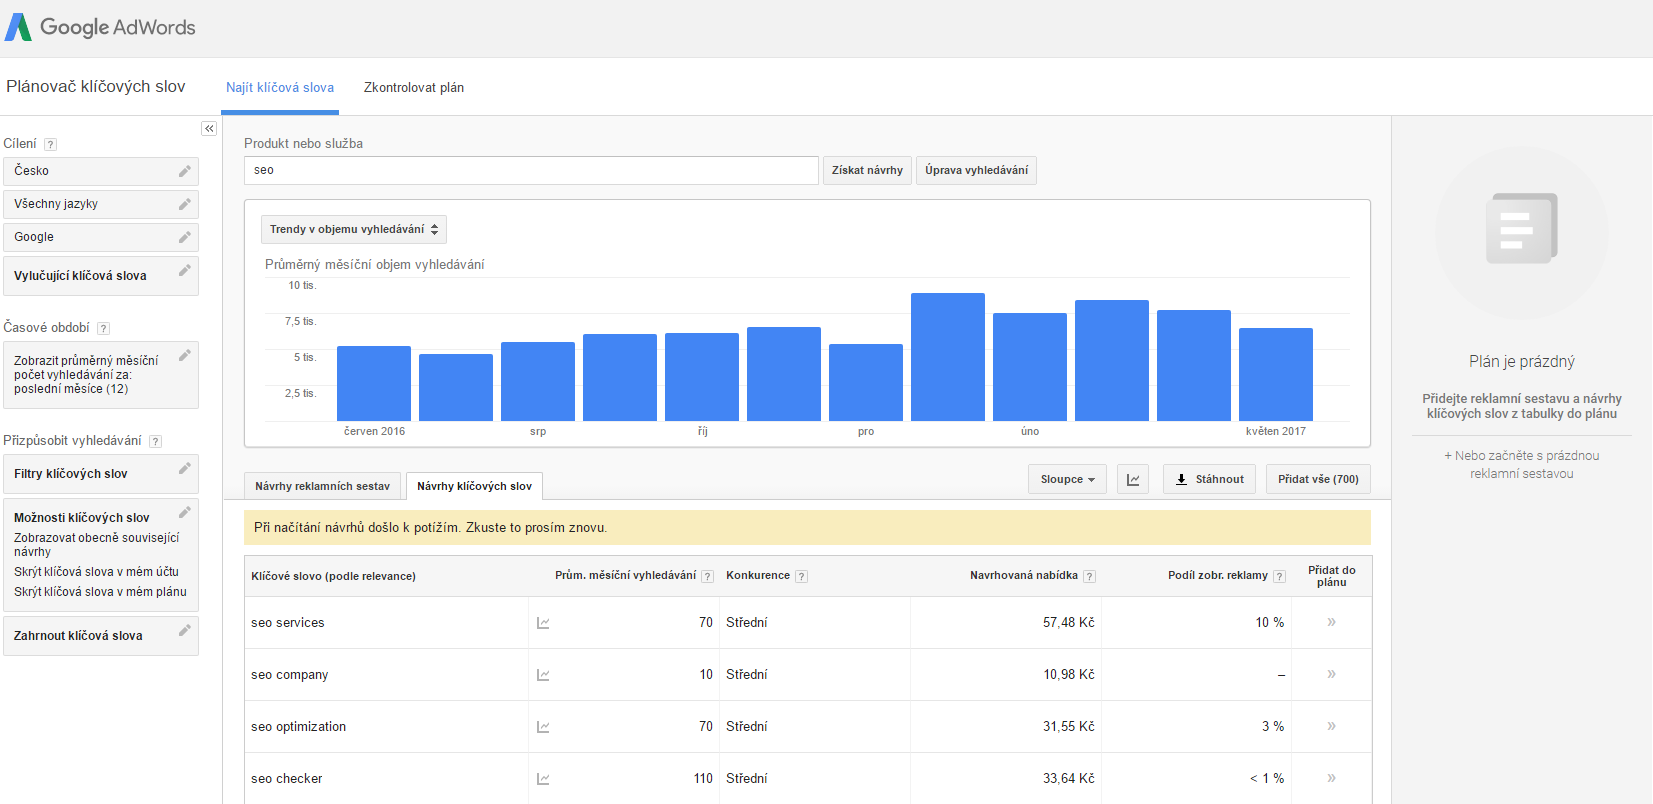 Example of suggested queries for the SEO phrase by the Google Keyword Planner tool